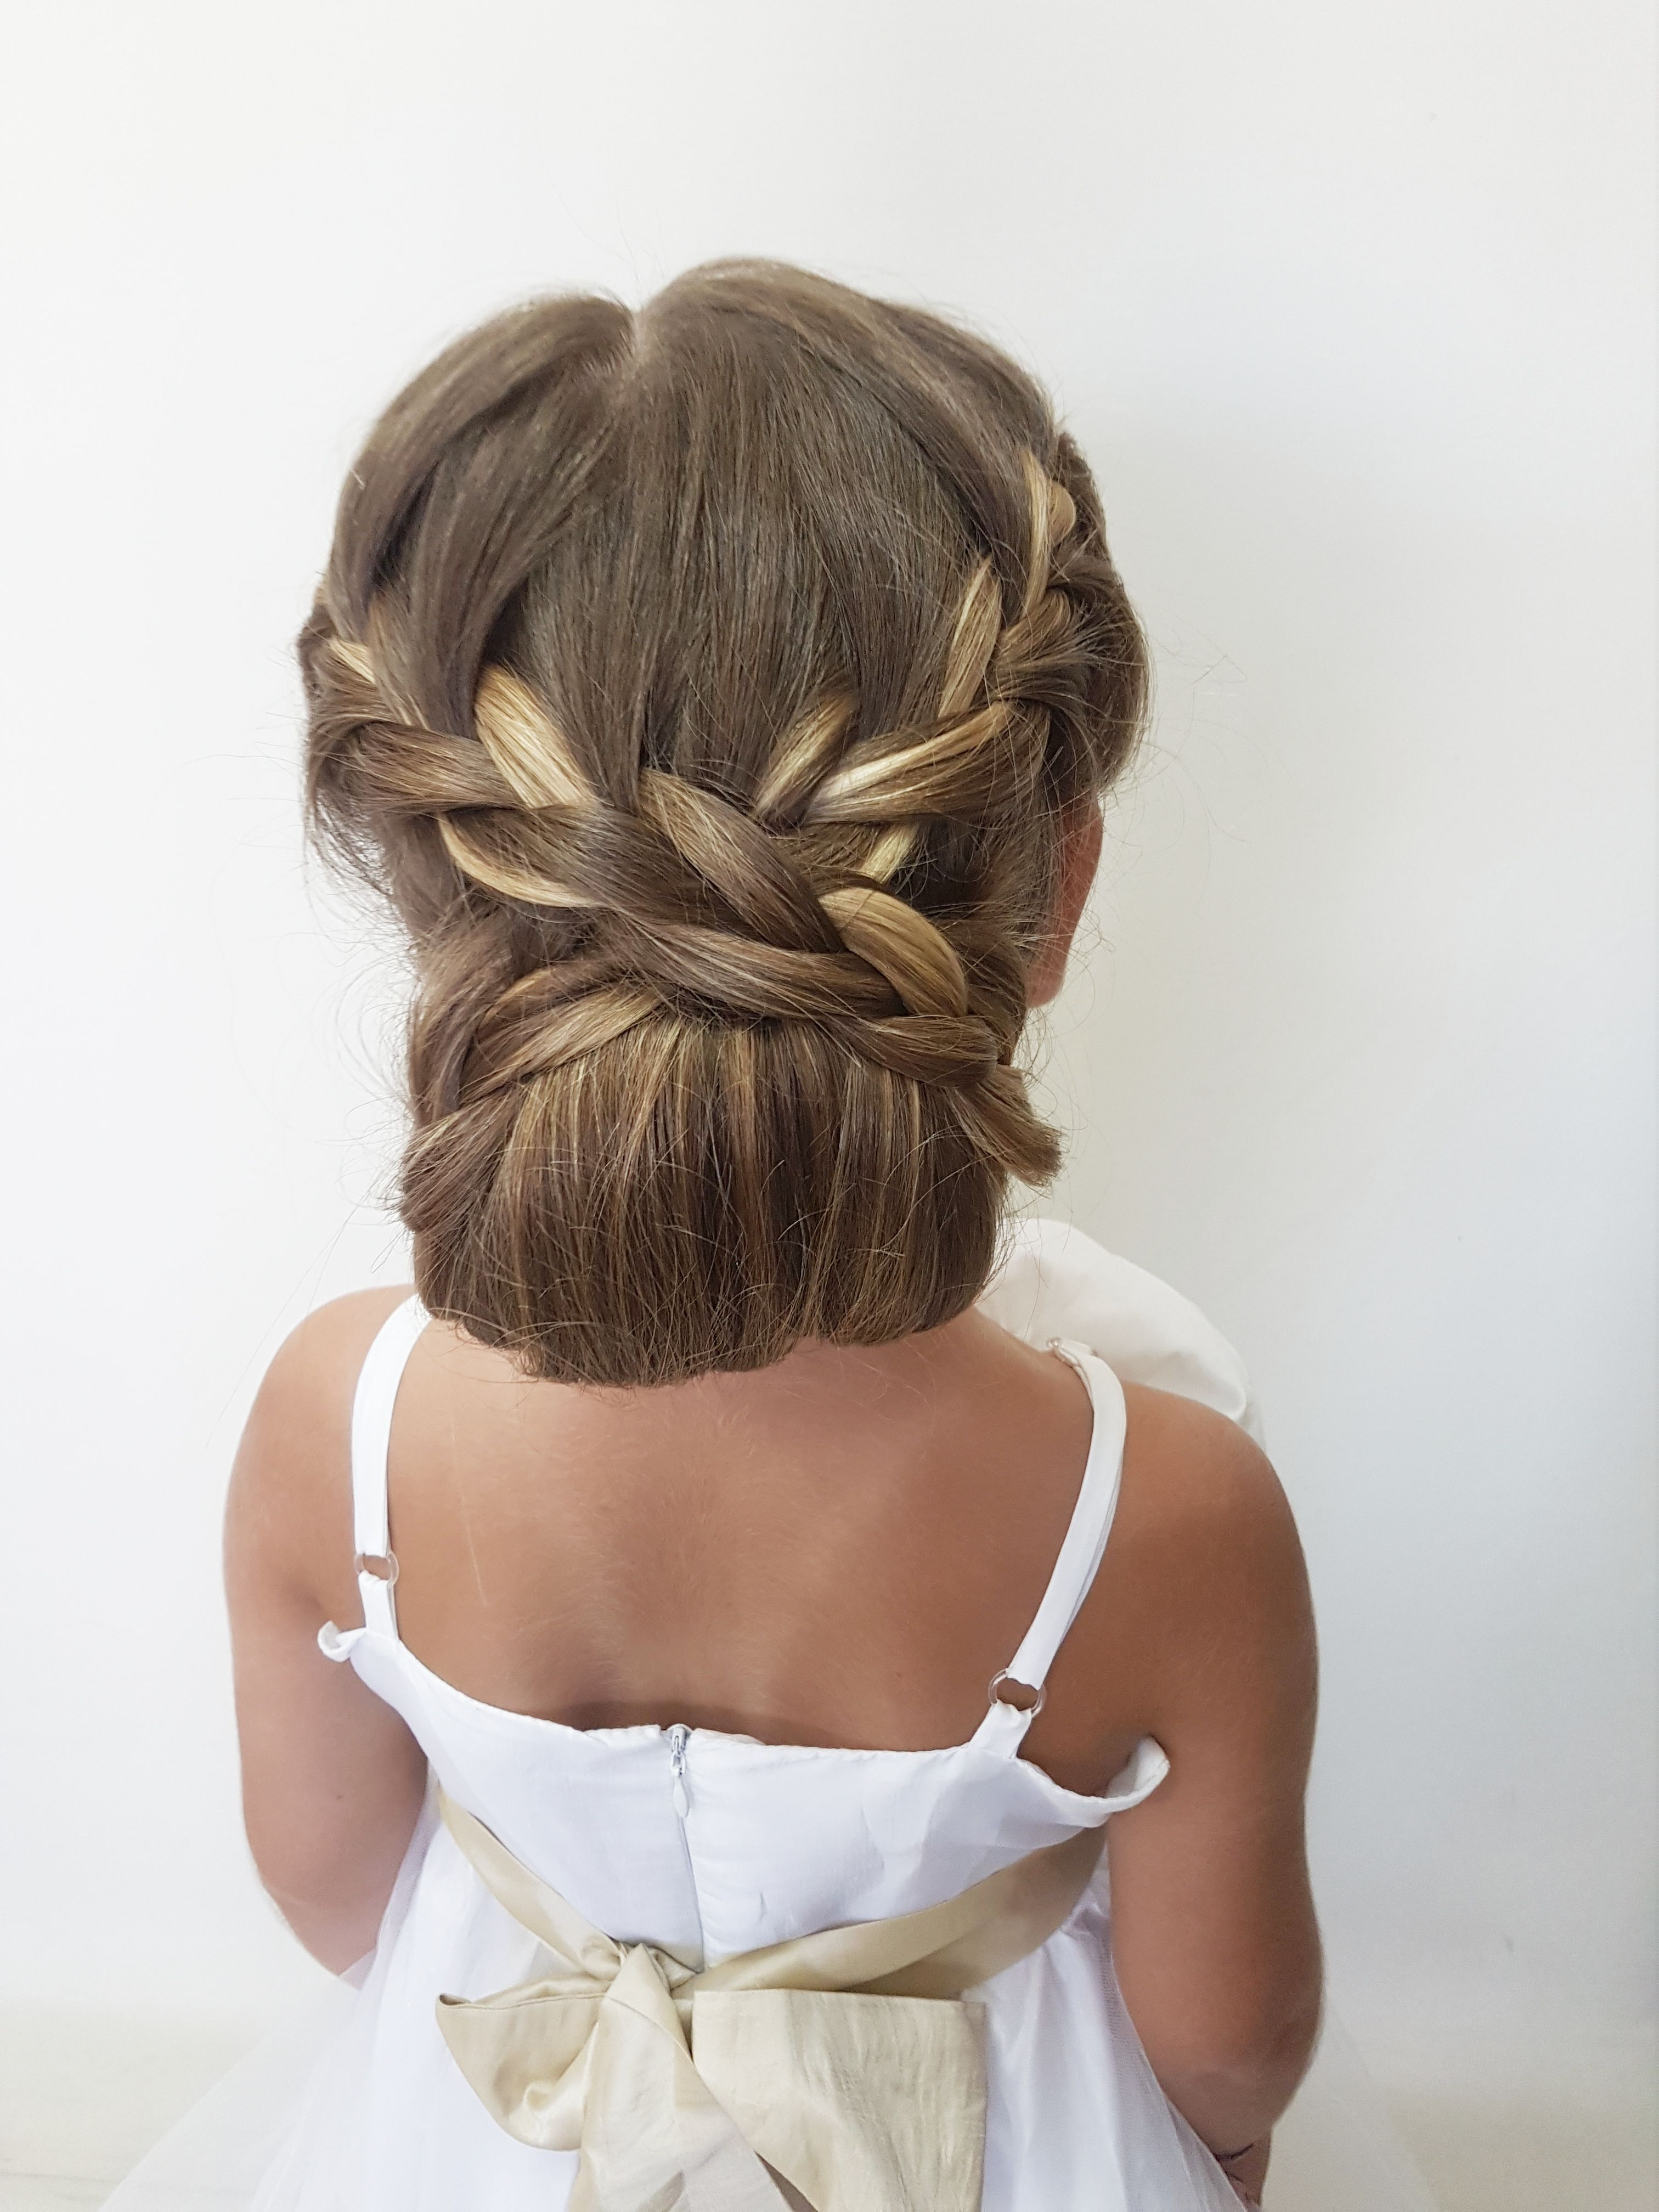 Www Influenster Com R 1184481 Wedding Hairstyles For Girls Little Girl Wedding Hairstyles Kids Updo Hairstyles